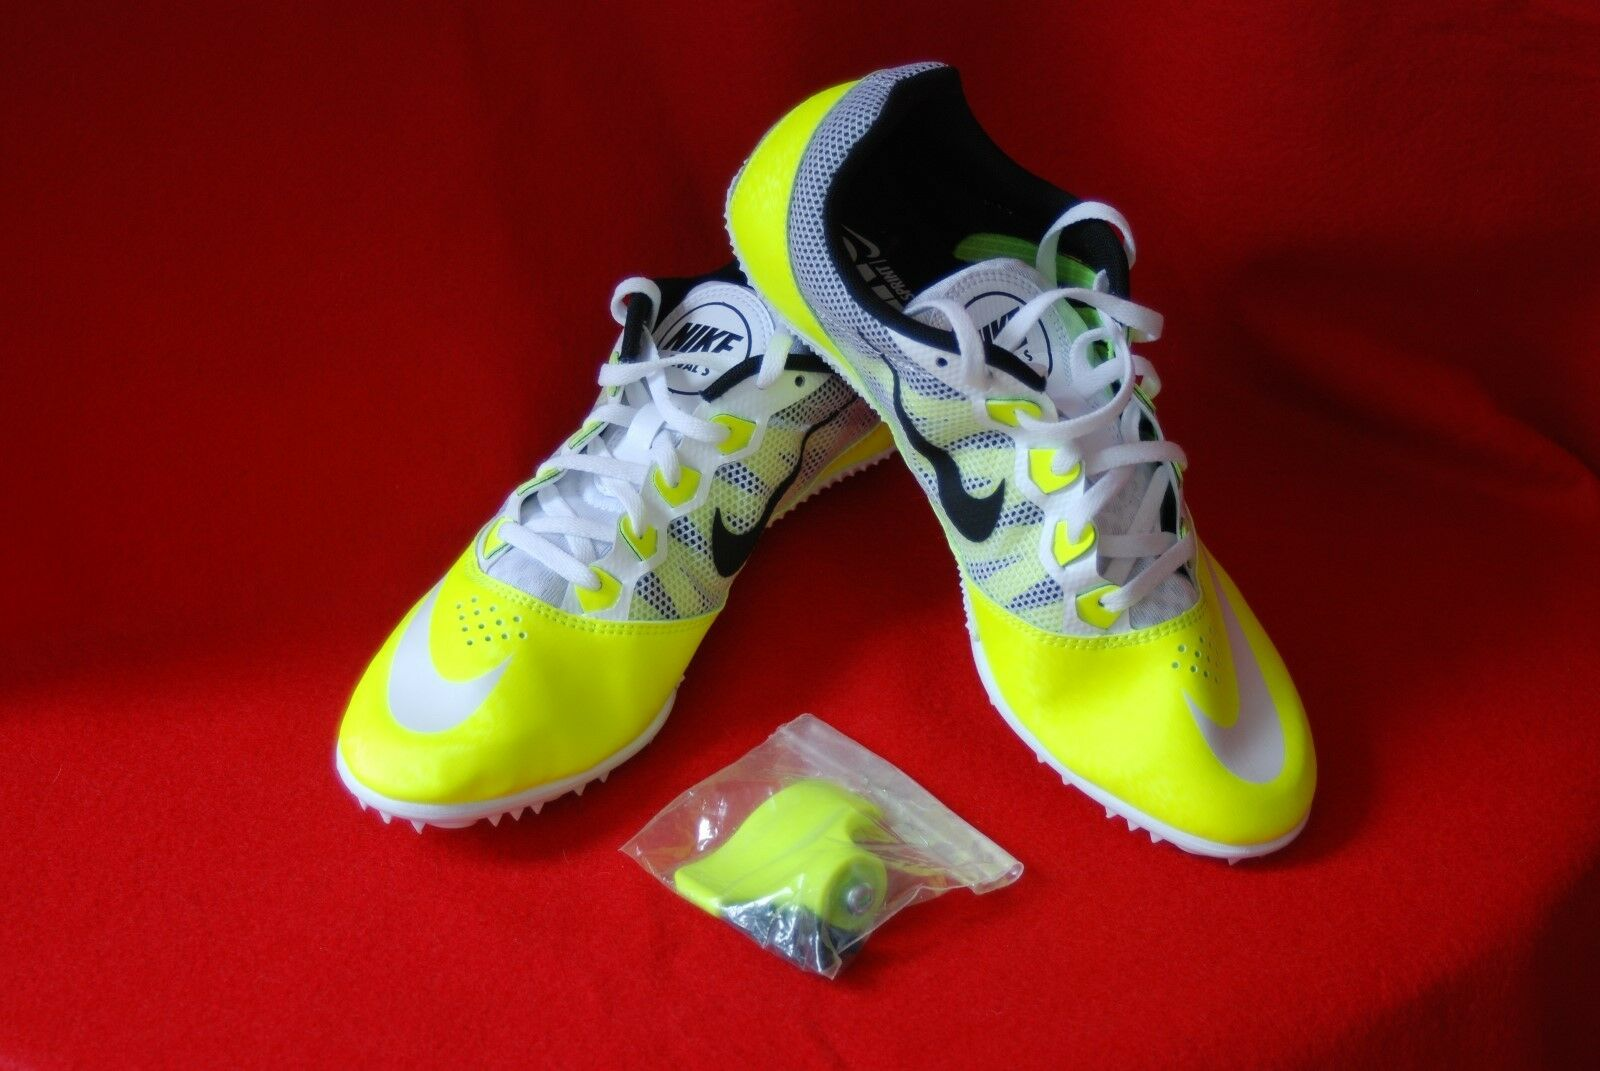 Nike Zoom Rival S 7 Men's Running Track Spikes  616313- 702 Size 11.5 NWOB